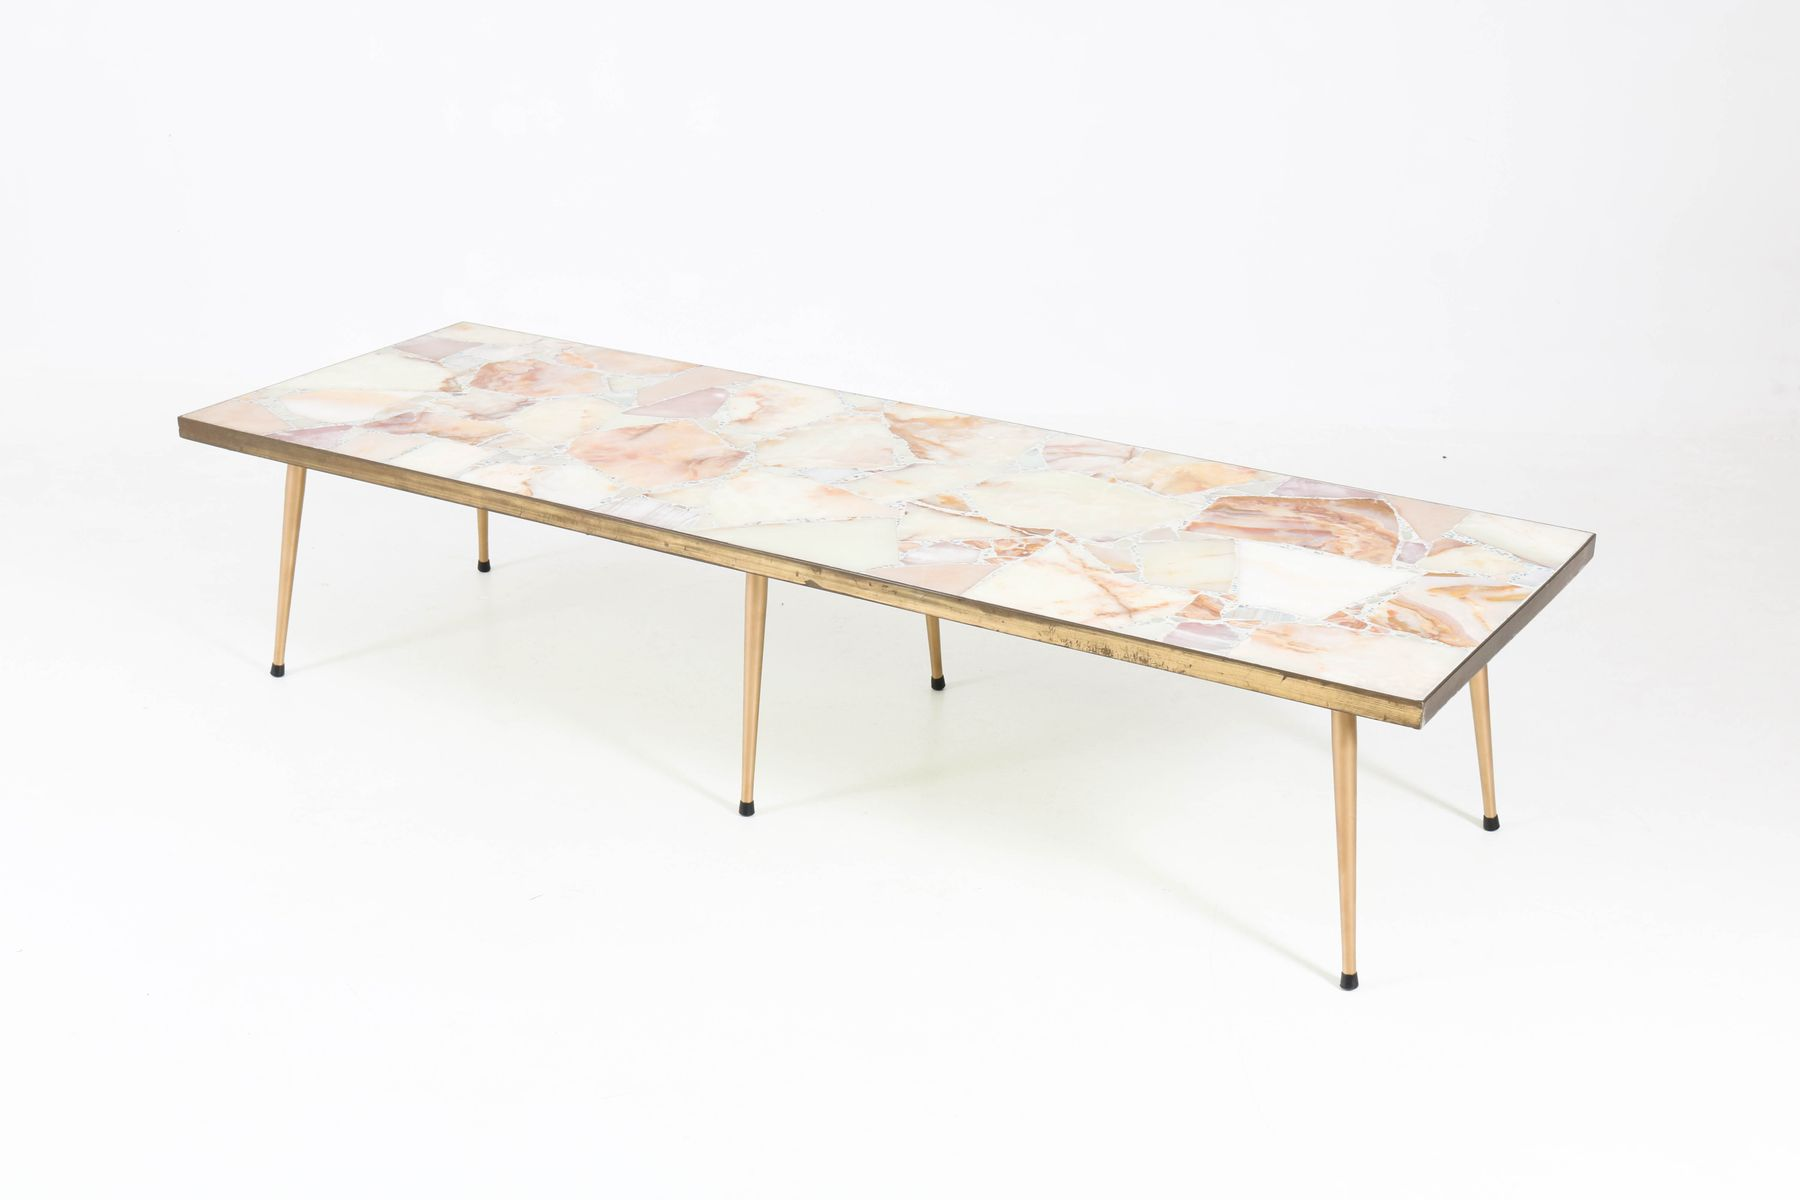 Large Italian Mid Century Modern Coffee Table With Onyx Top 1950s